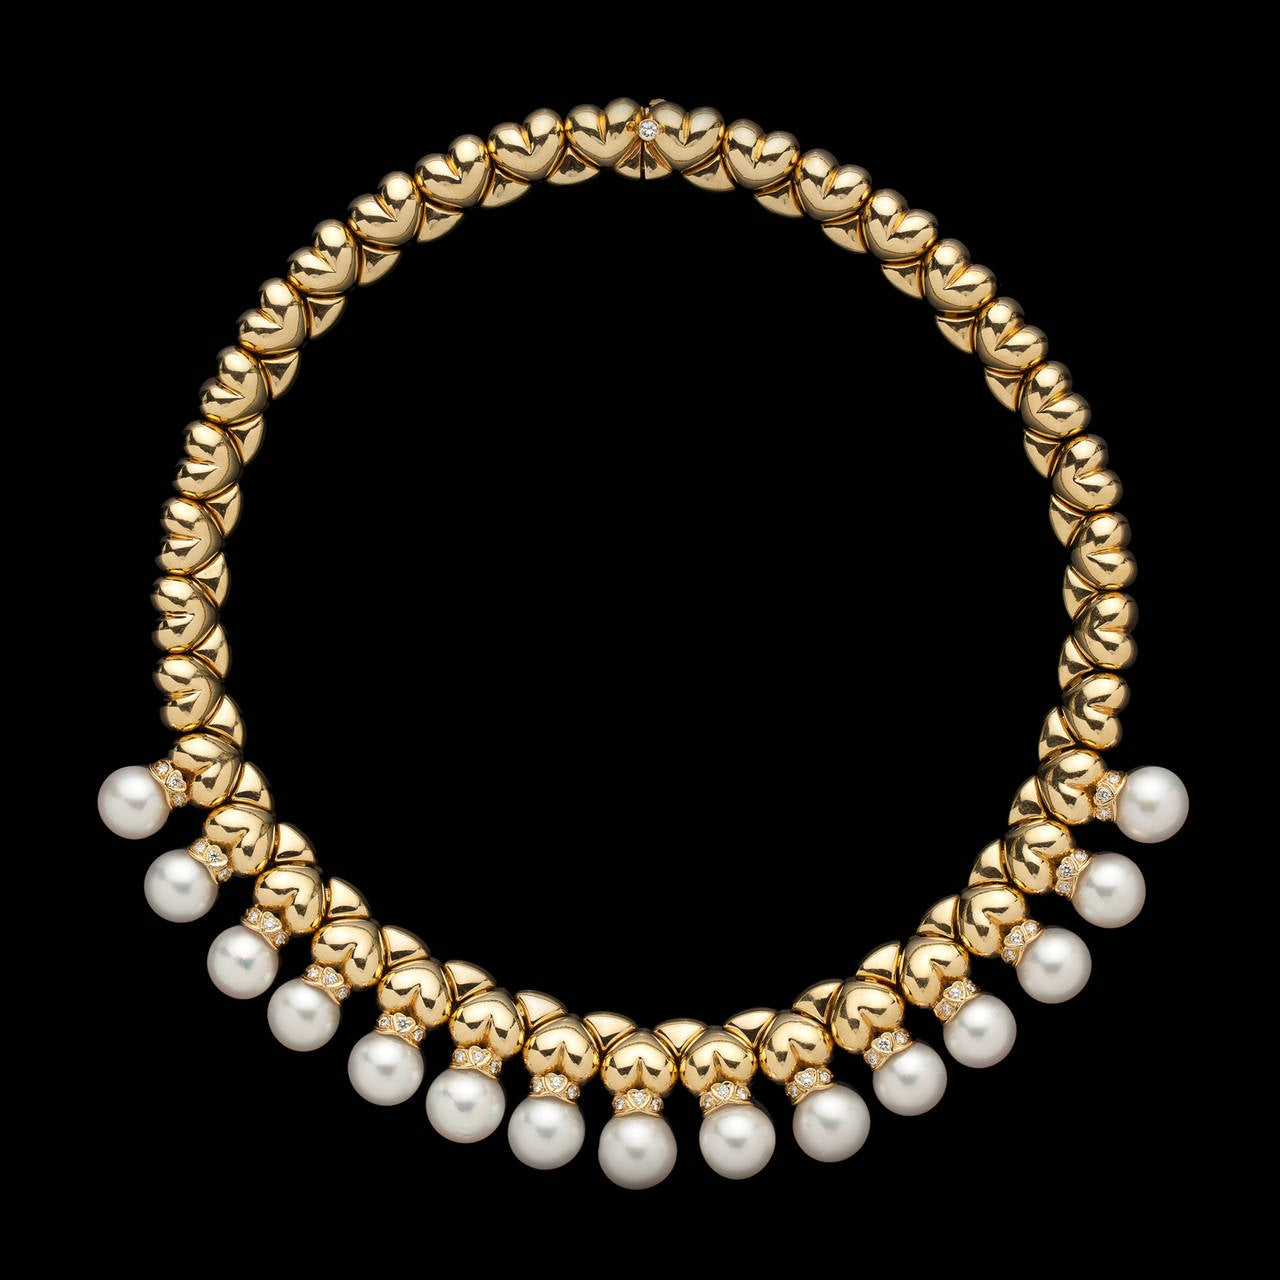 garrad jewelry garrard pearl gold link necklace at 1stdibs 4521